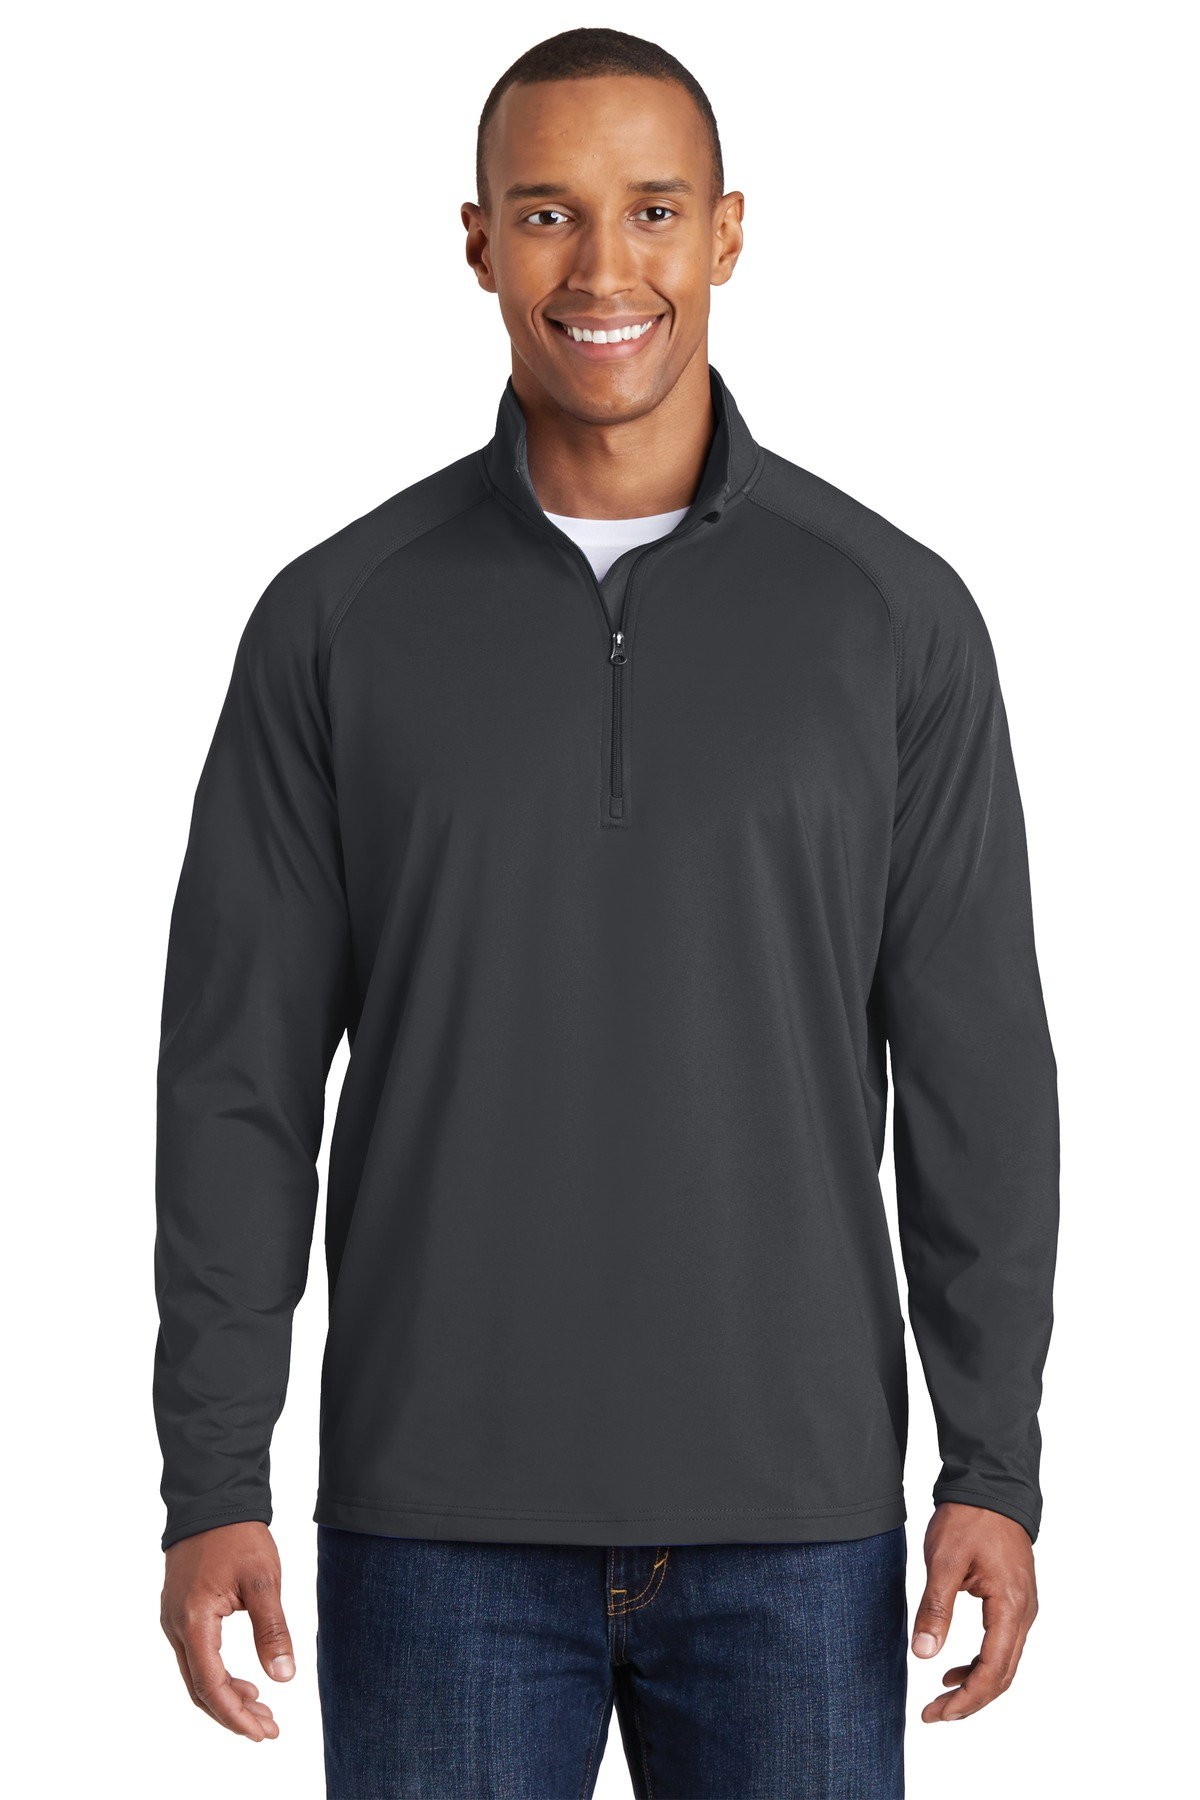 Sport-Tek ®  Sport-Wick ®  Stretch 1/2-Zip Pullover. ST850 - Charcoal Grey